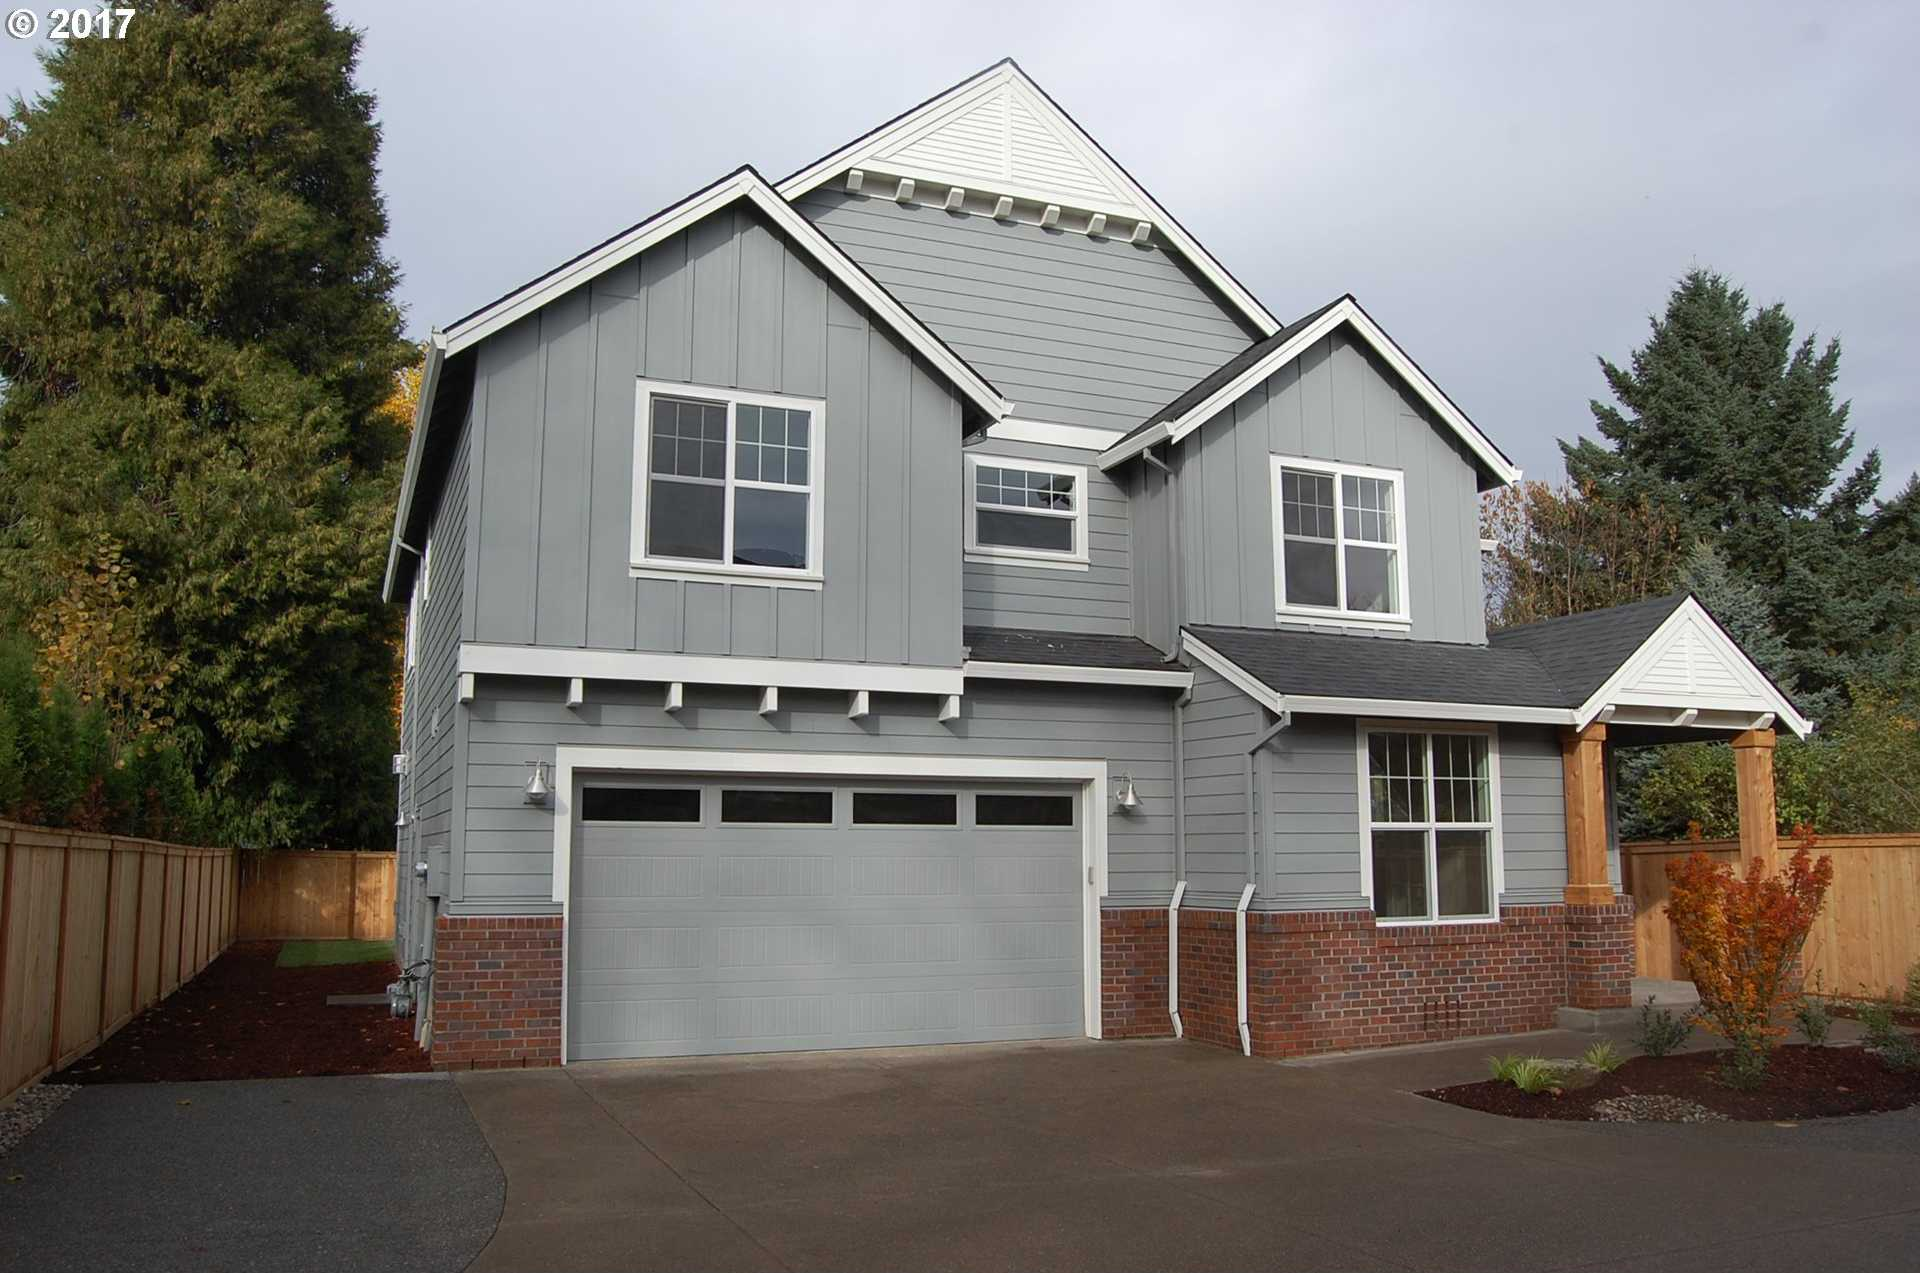 $619,000 - 4Br/3Ba -  for Sale in Willamette, West Linn